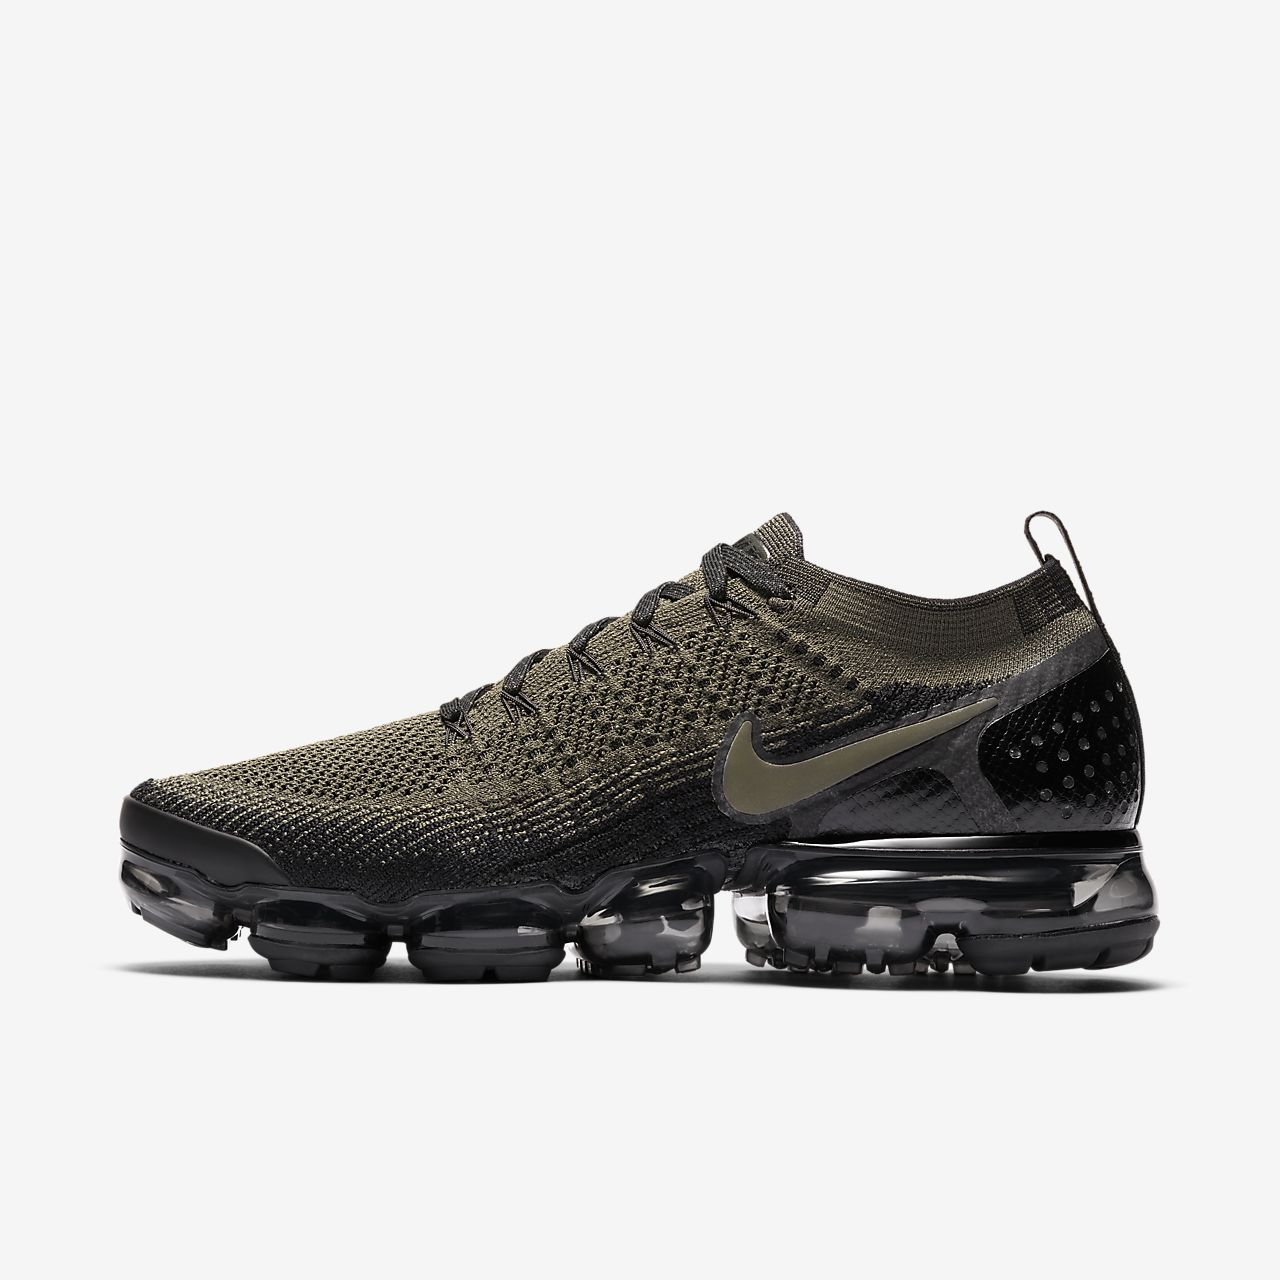 Ch Nike 2 Pour Air Snake Vapormax Homme Flyknit Chaussure z8Twz